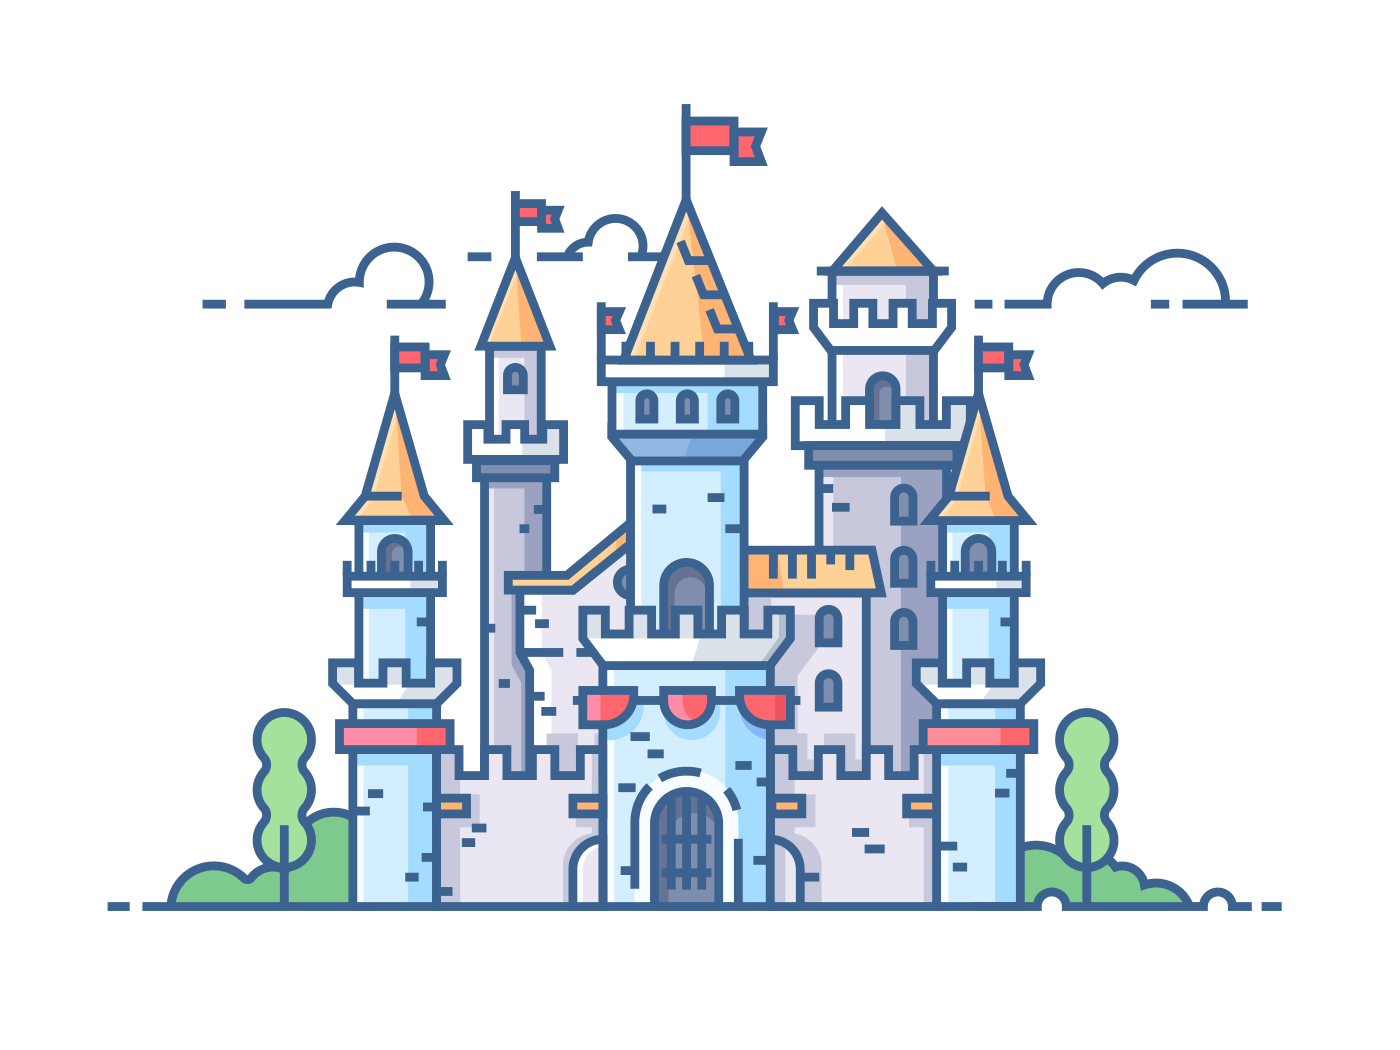 Medieval stone castle with gate towers and flags. Vector illustration